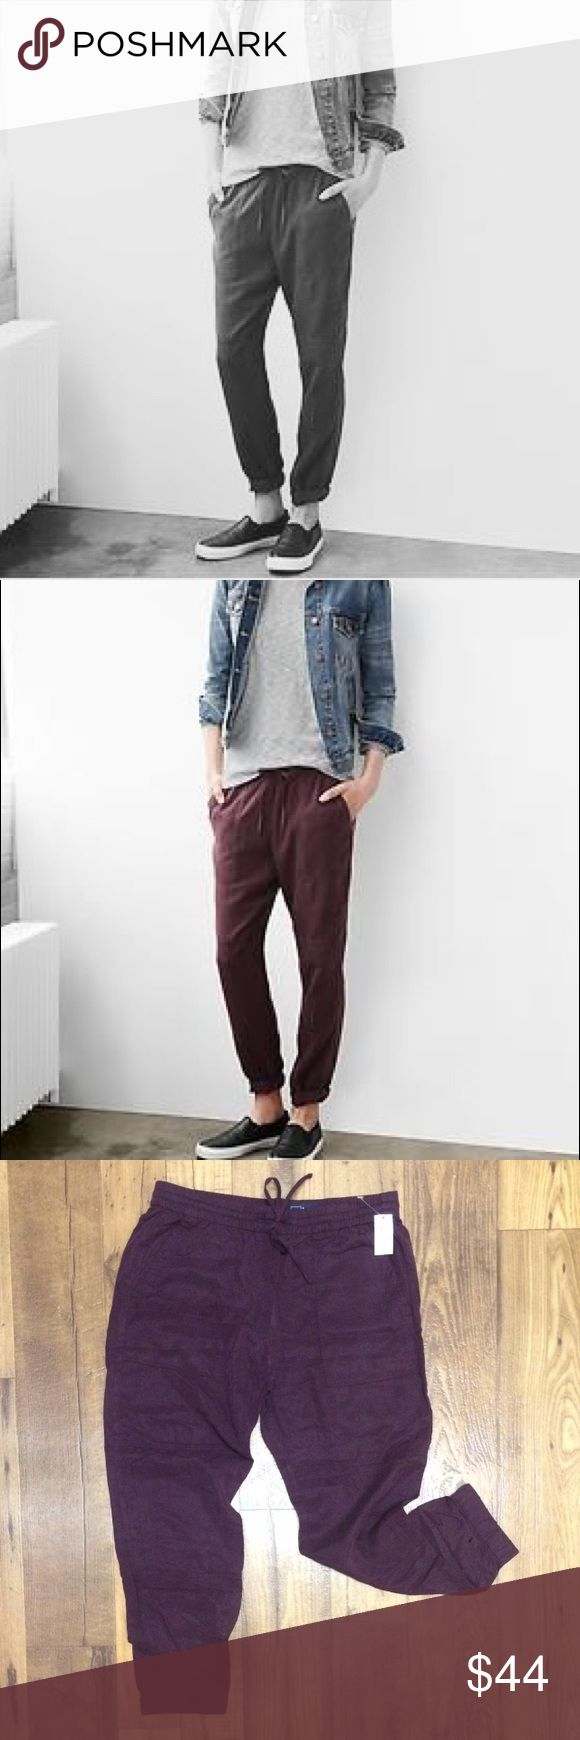 """NWT Maroon Joggers NEW With Tag Maroon Gap Jogger Pants   Size M   Waist: approx 16""""  Inseam: approx 26.5""""  Rise: approx 11.5""""  🚫NO TRADES🚫 GAP Pants Track Pants & Joggers"""